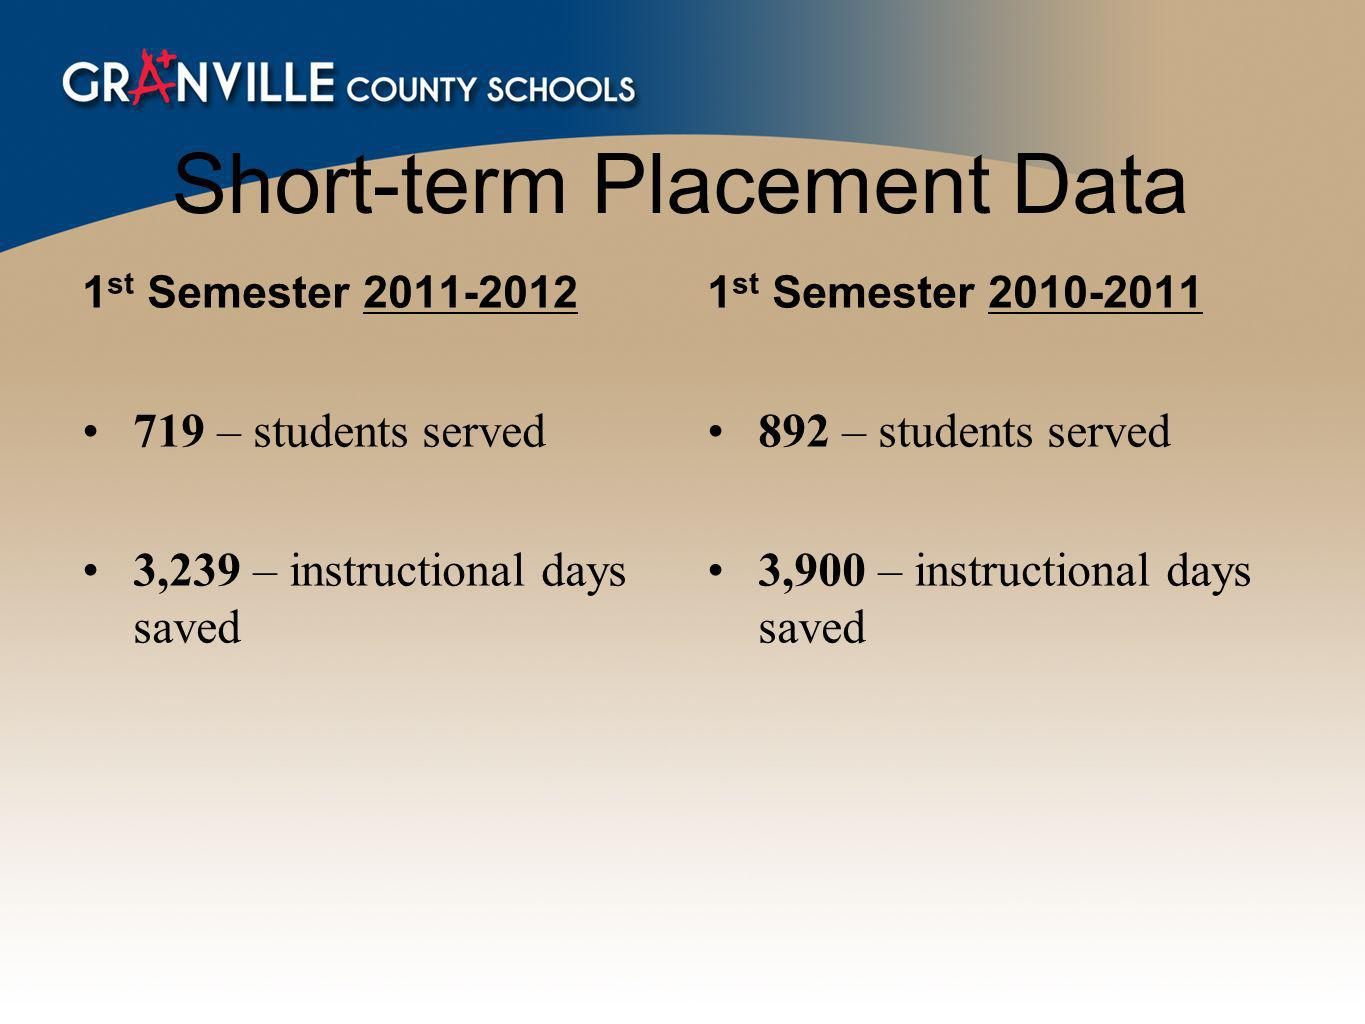 Short-term Placement Data 1 st Semester 2011-2012 719 – students served 3,239 – instructional days saved 1 st Semester 2010-2011 892 – students served 3,900 – instructional days saved